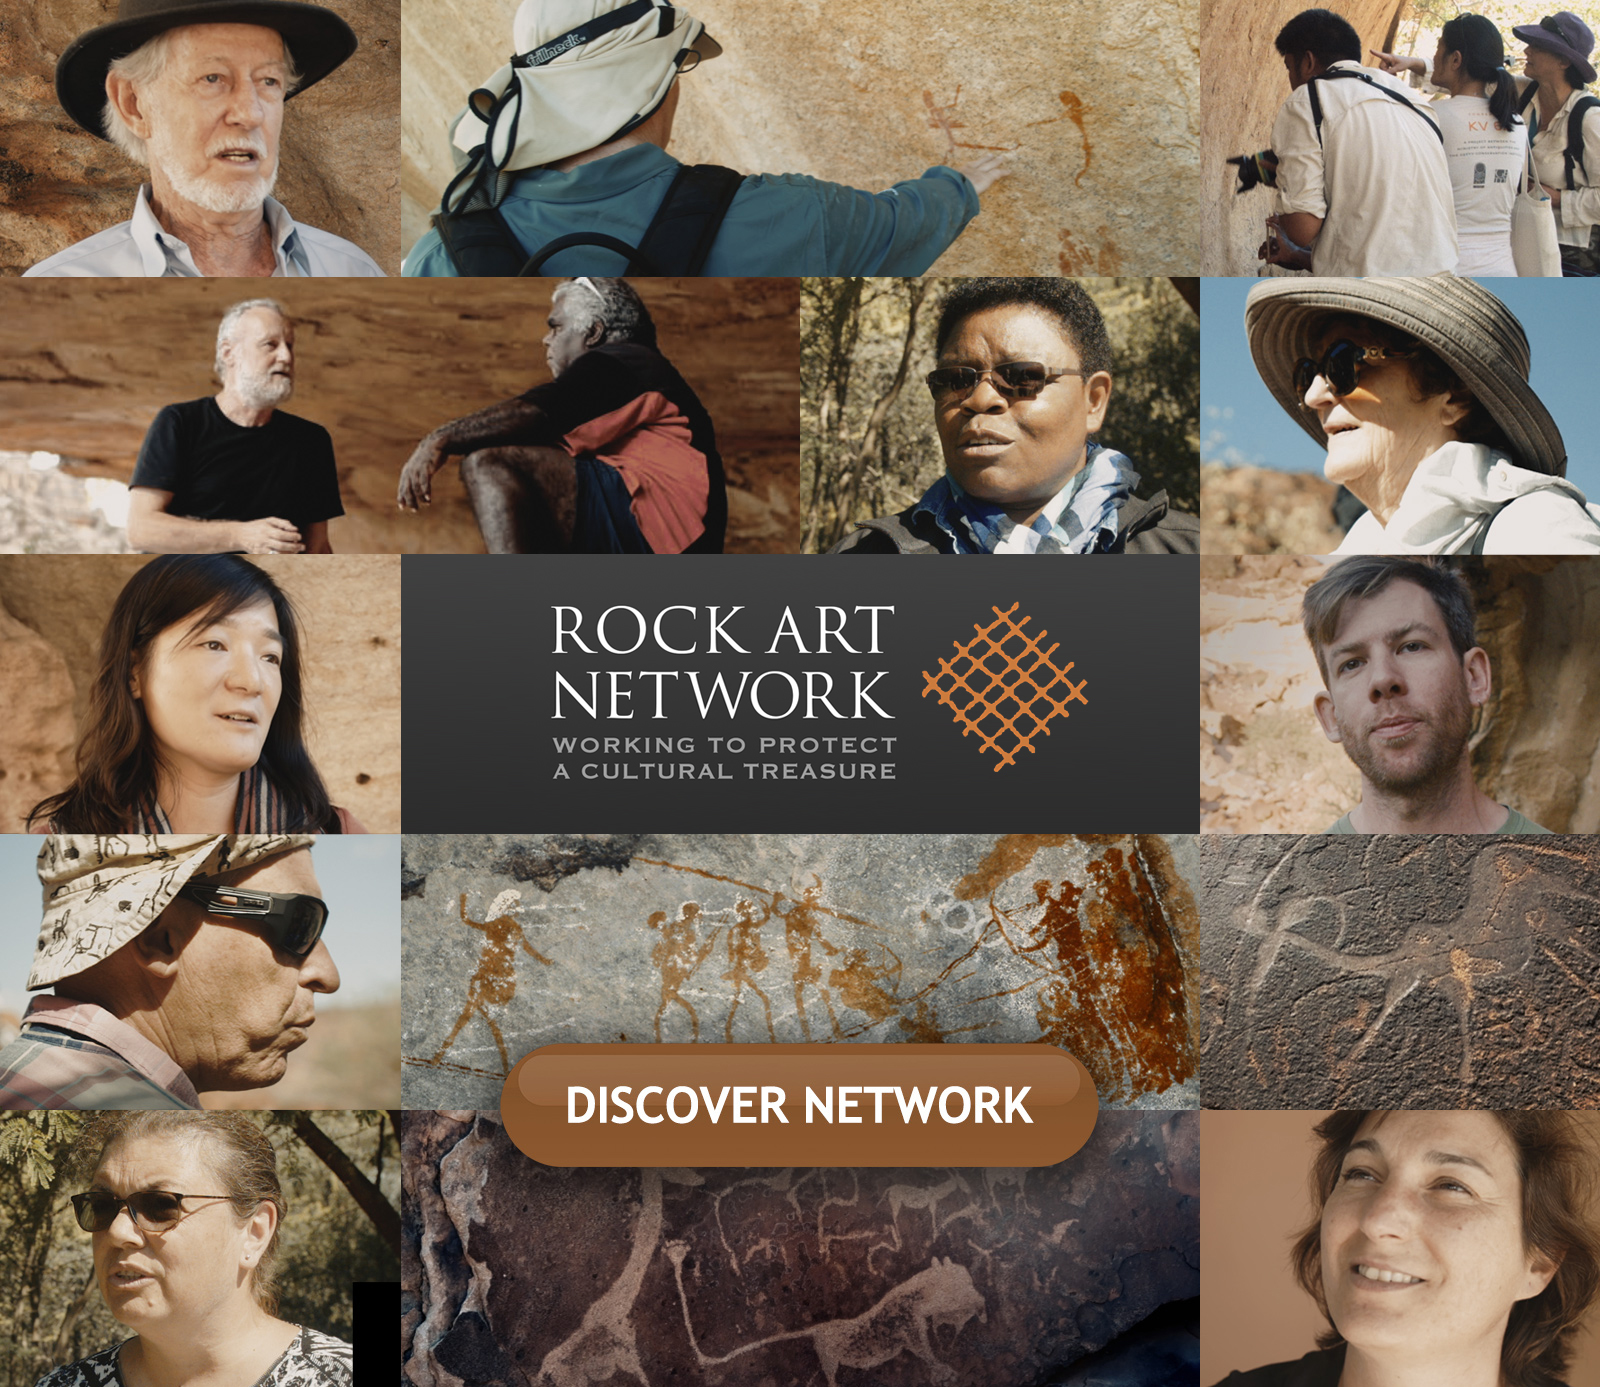 The Rock Art Network